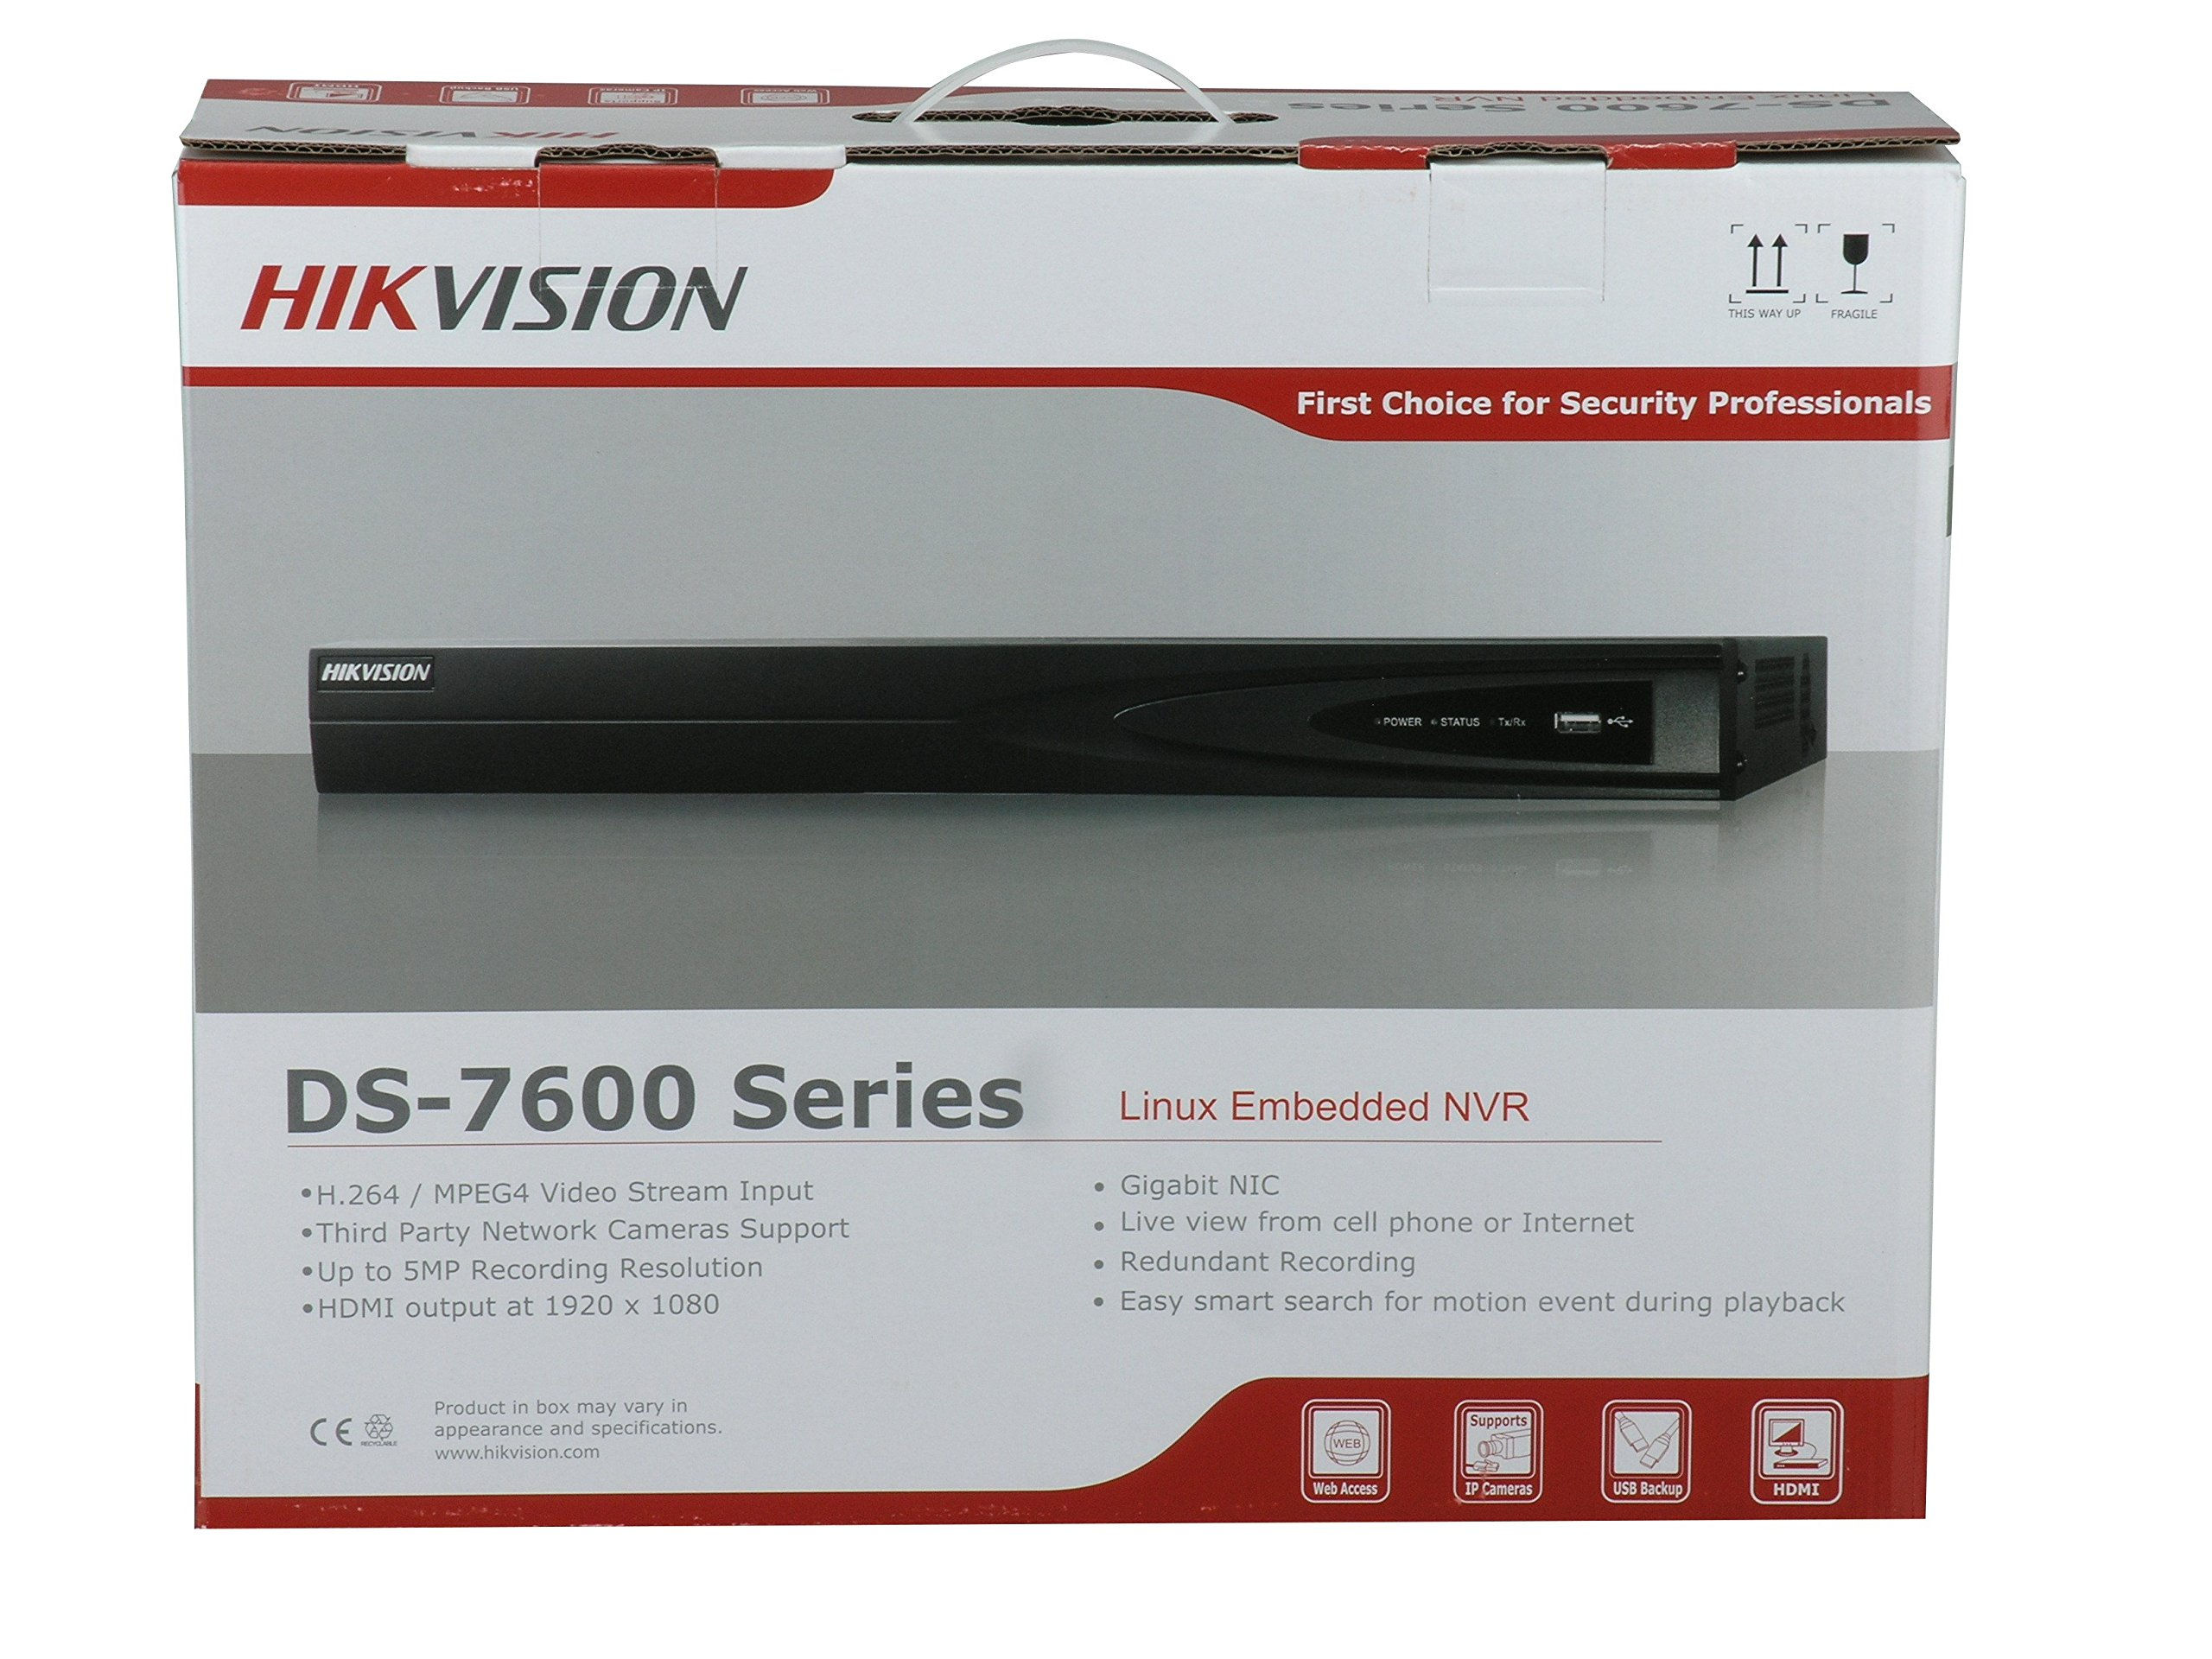 HIKVISION DS-7604NI-E1/4P 4CH PoE NVR Network Video Recorder with up to 5MP Resolution Recording Includes a 1TB Hard Drive by Hikvision (Image #5)